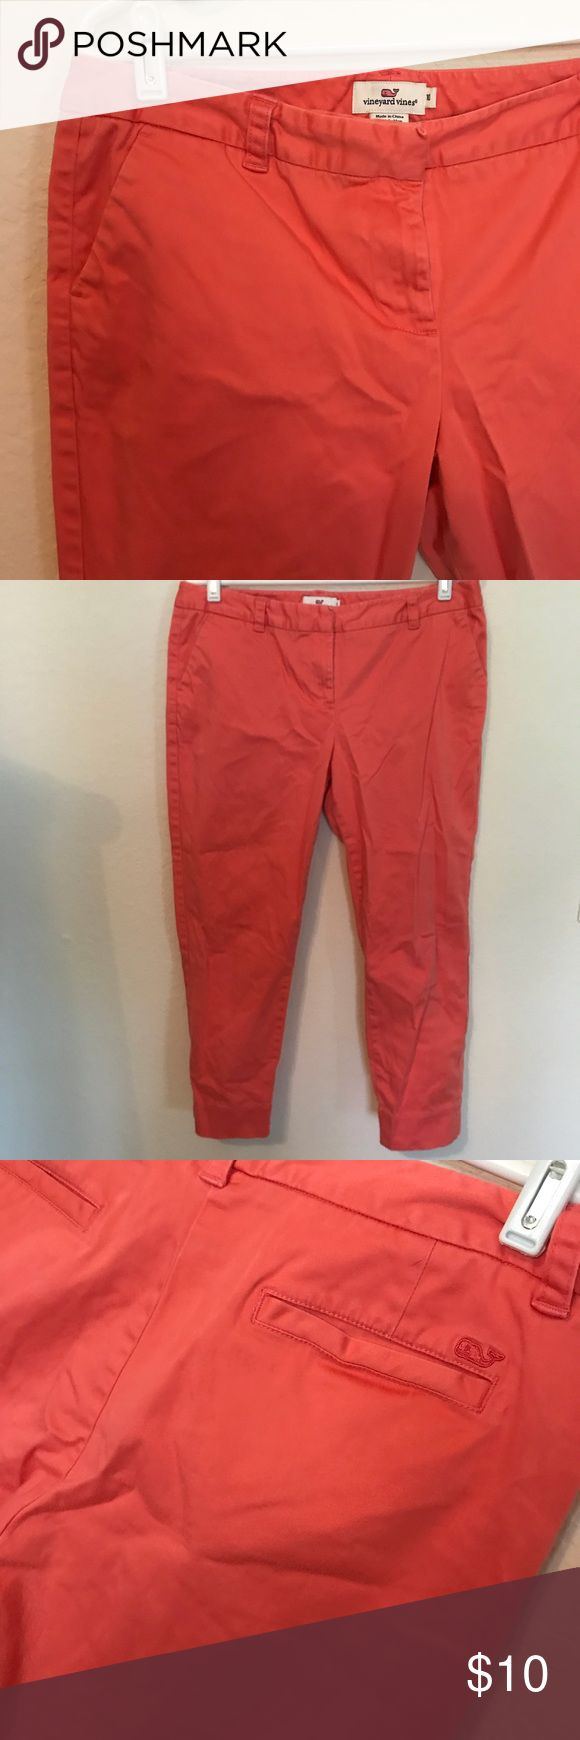 Vineyard Vines Coral Capri pants Great condition other then two small spots- one on back of leg and the other by the front closure. Both pictured. Vineyard Vines Pants Capris